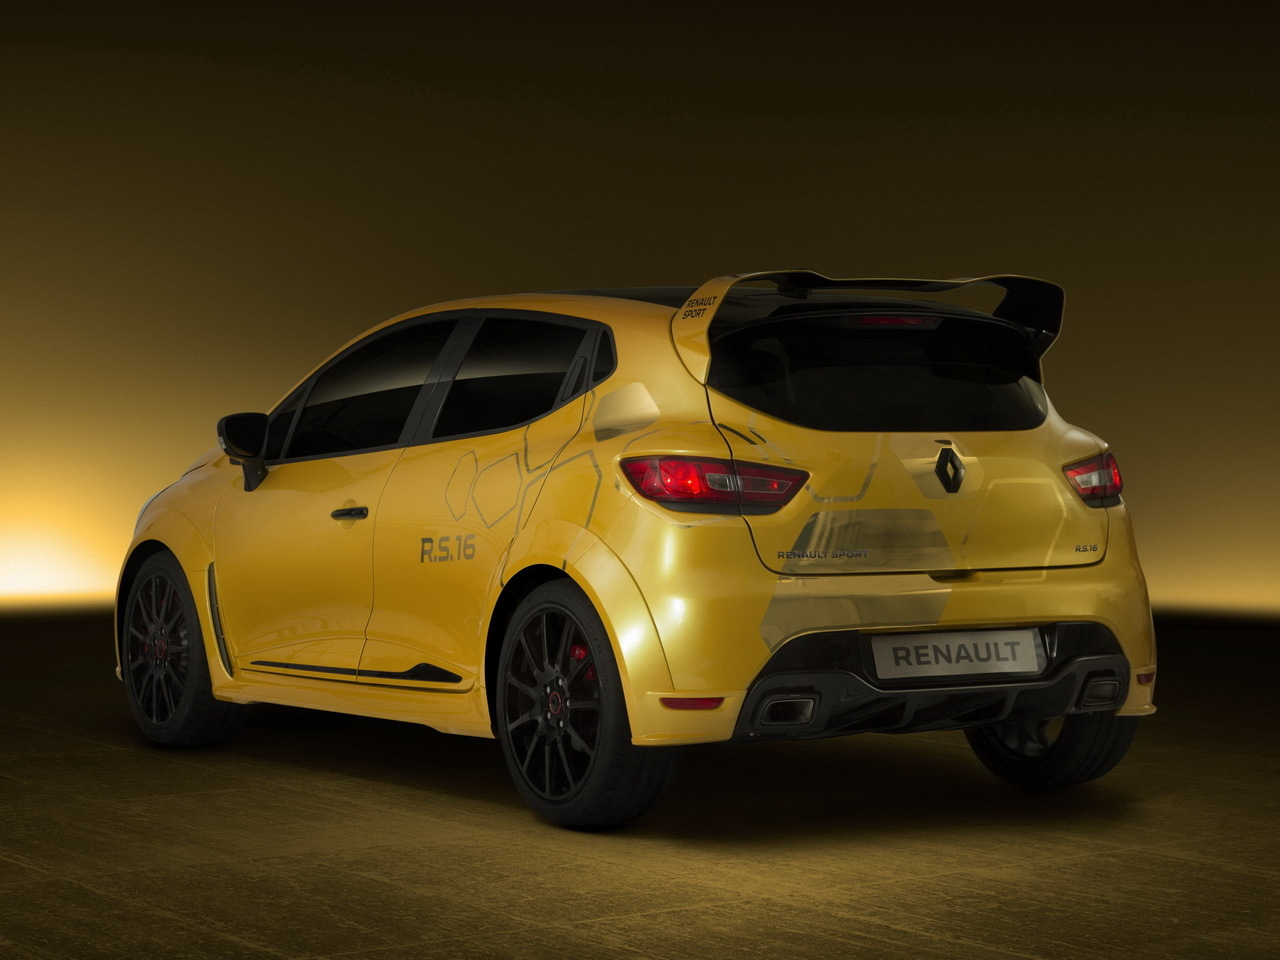 renault clio rs 16 275 ch dans la clio 4 rs photo 2 l 39 argus